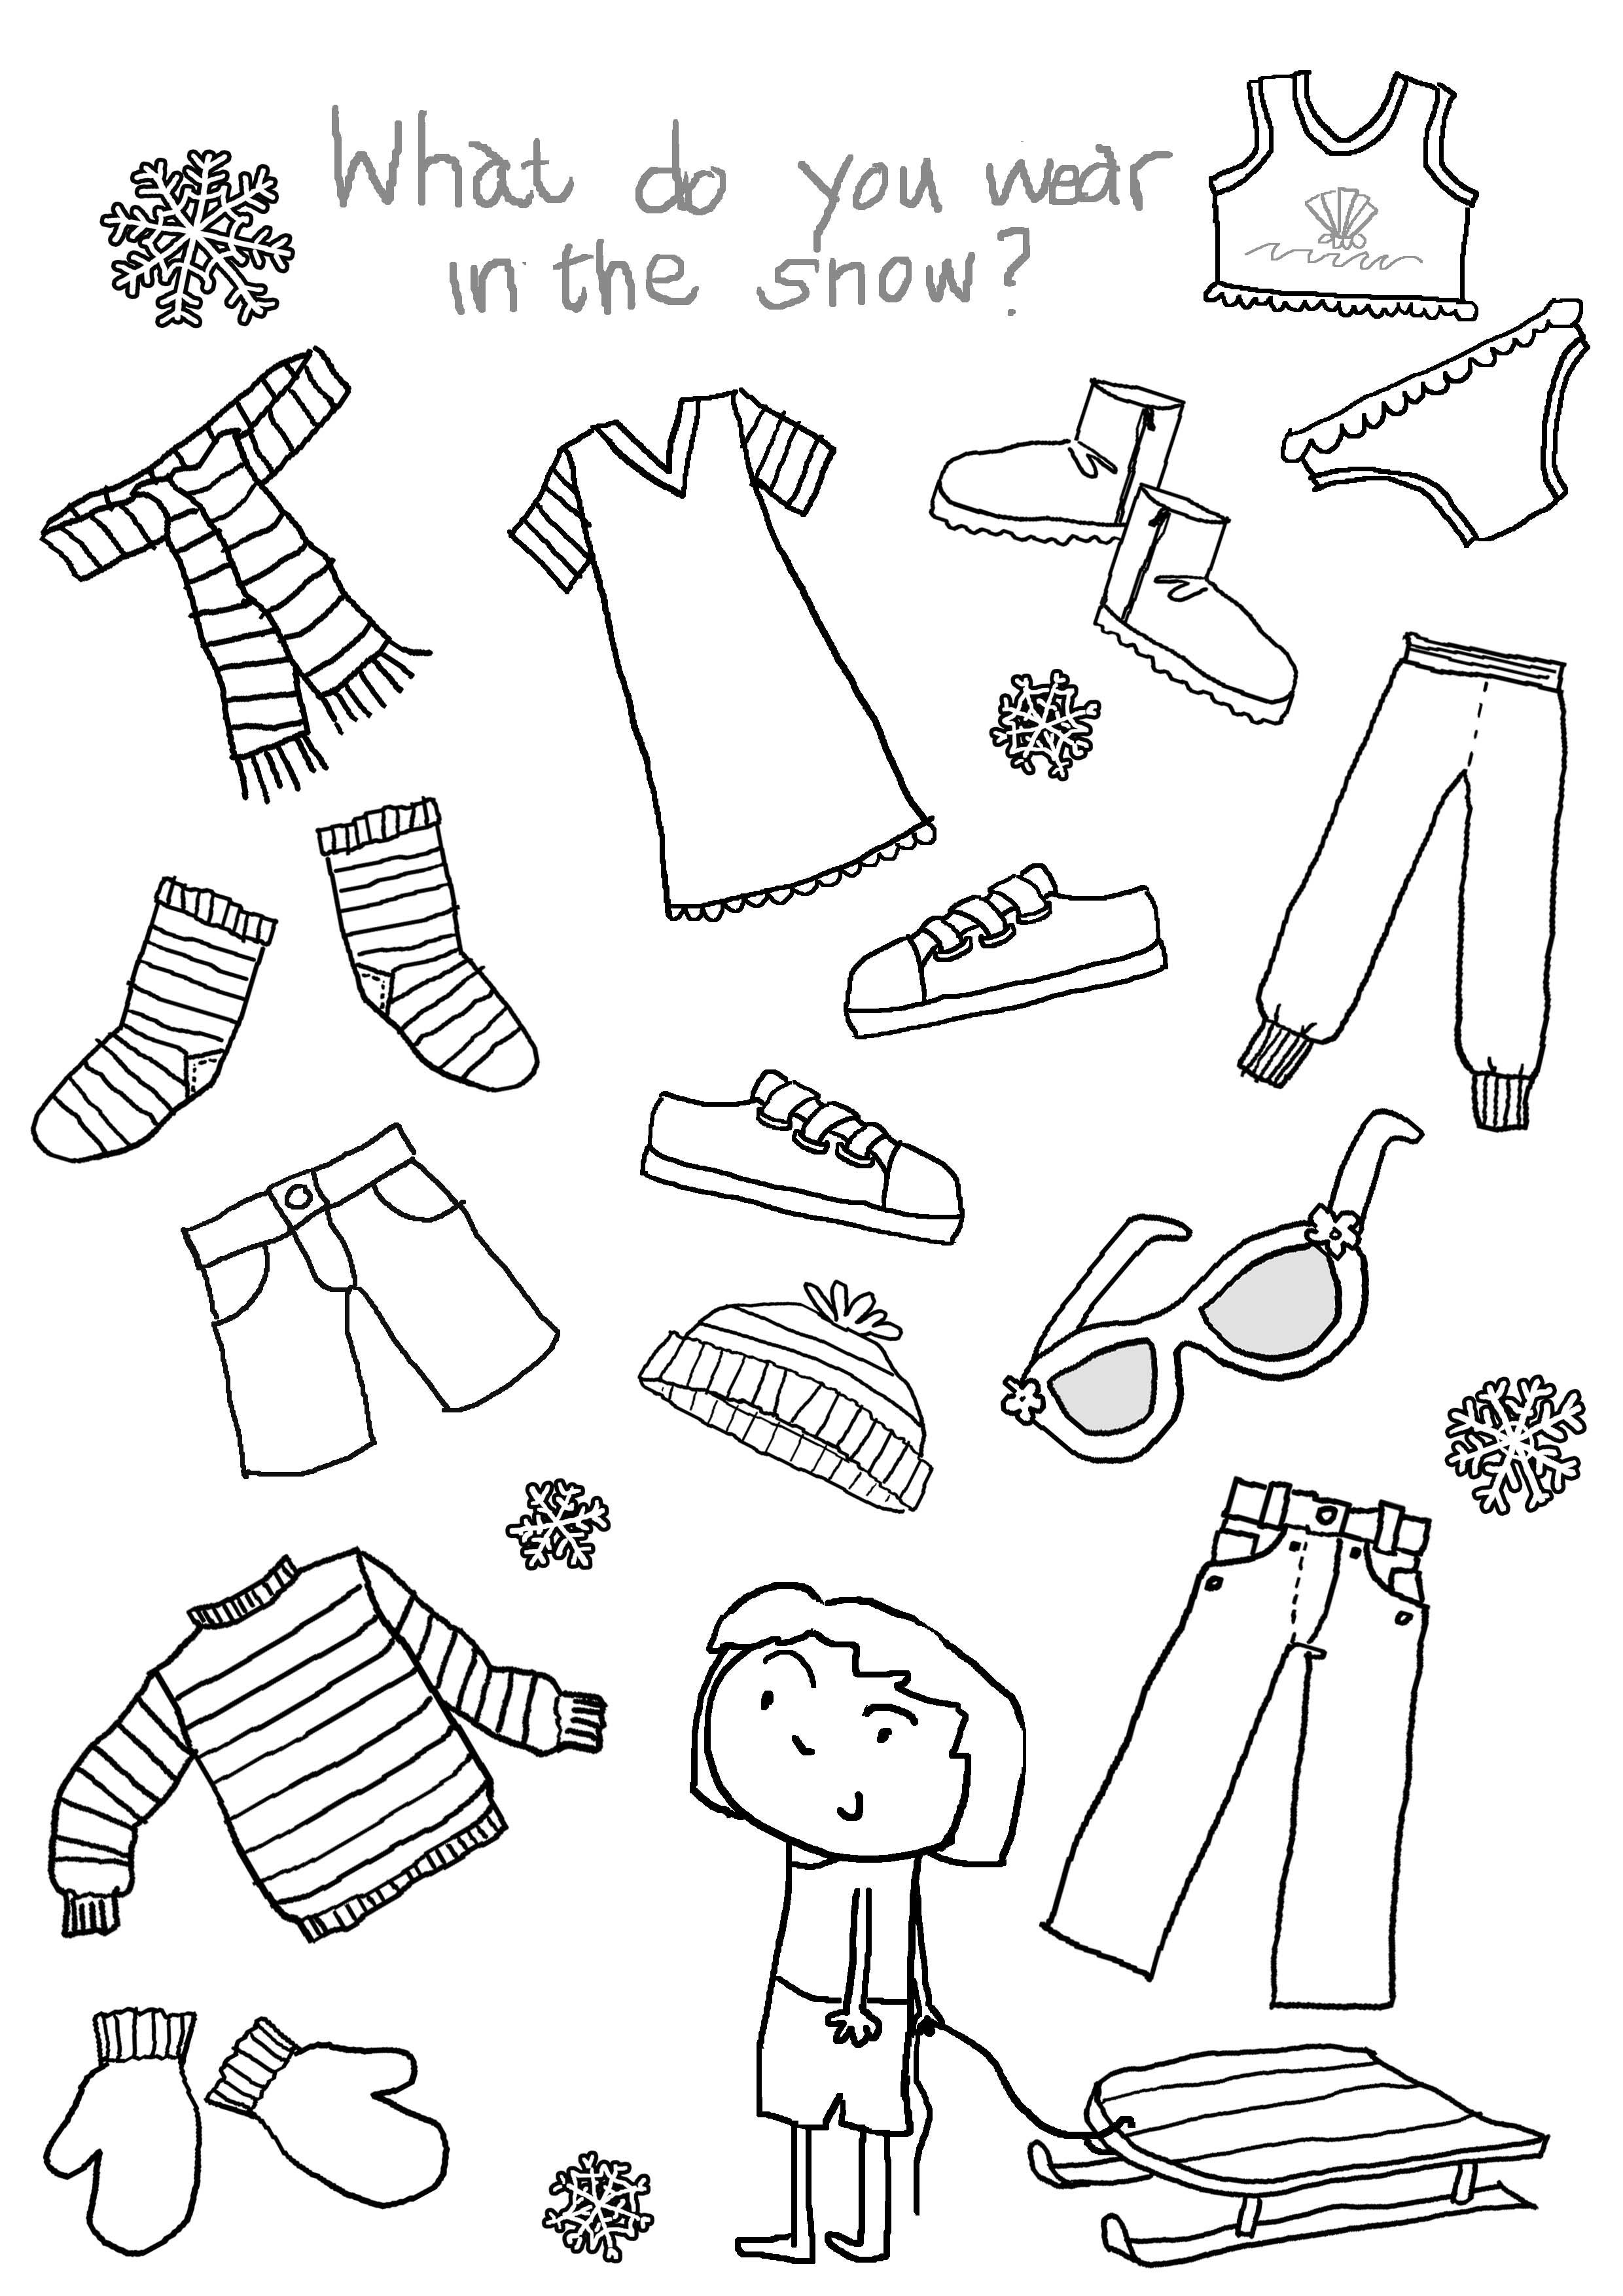 5 Best Images Of Printable Cut Out Winter Clothes